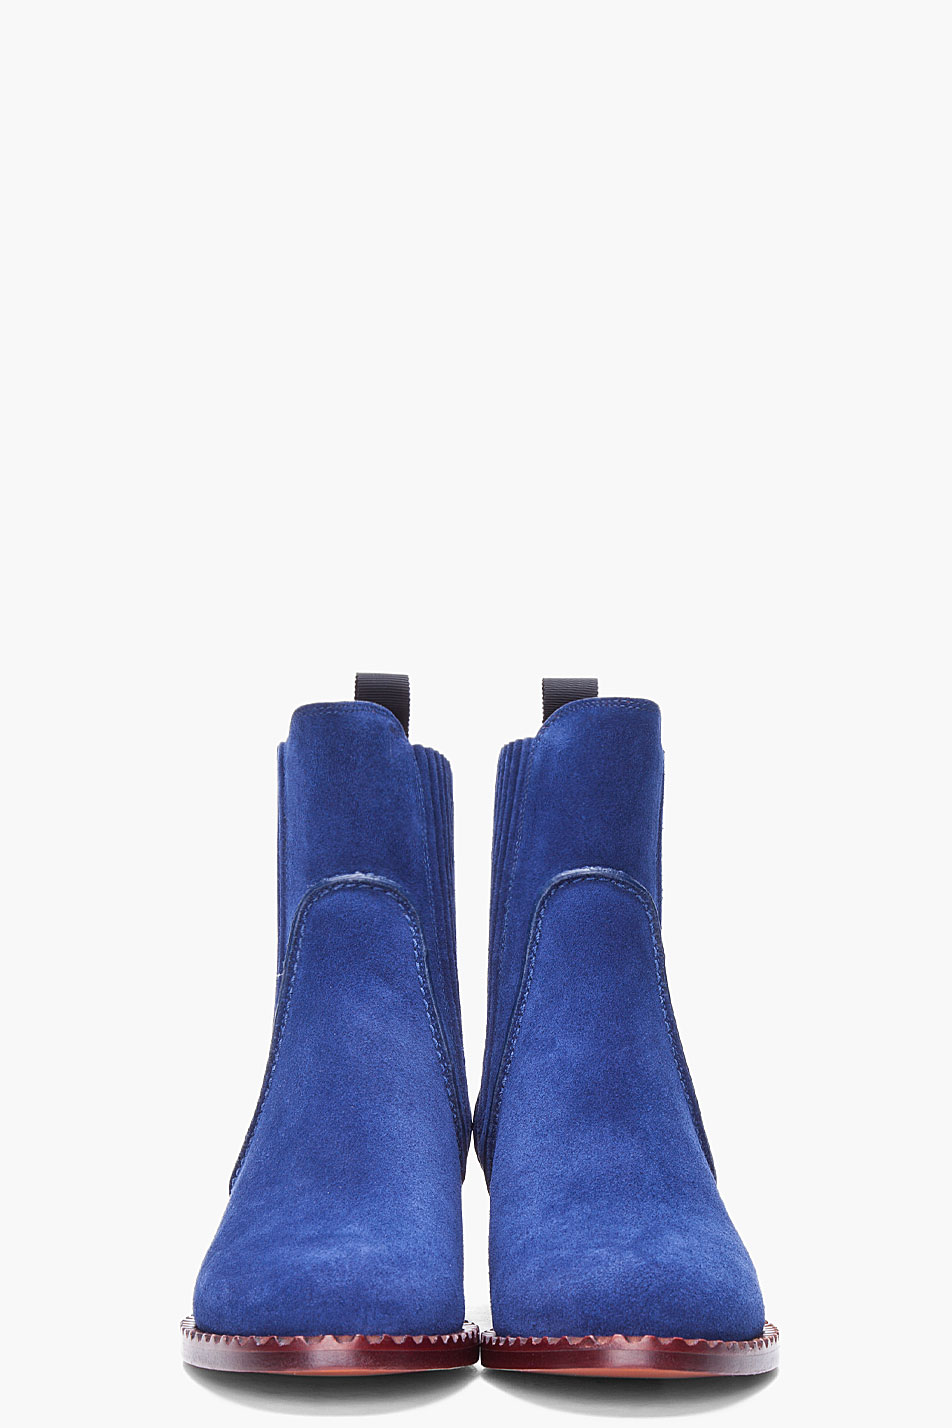 Marc by marc jacobs Blue Suede Chelsea Boots in Blue   Lyst